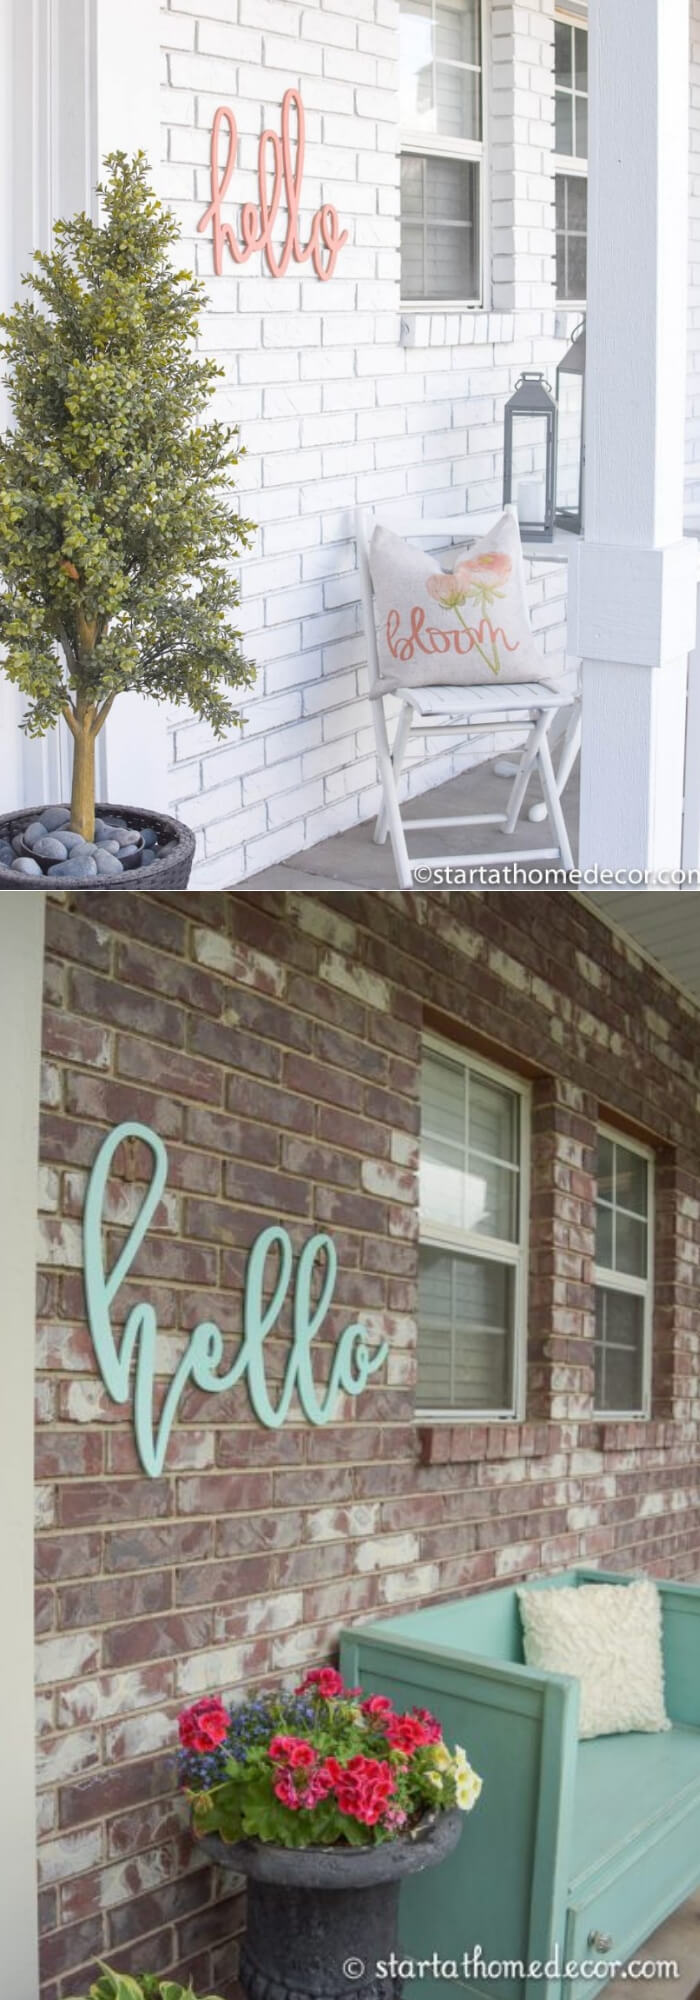 The wall with hello sign | Best Outdoor Wall Decor Ideas